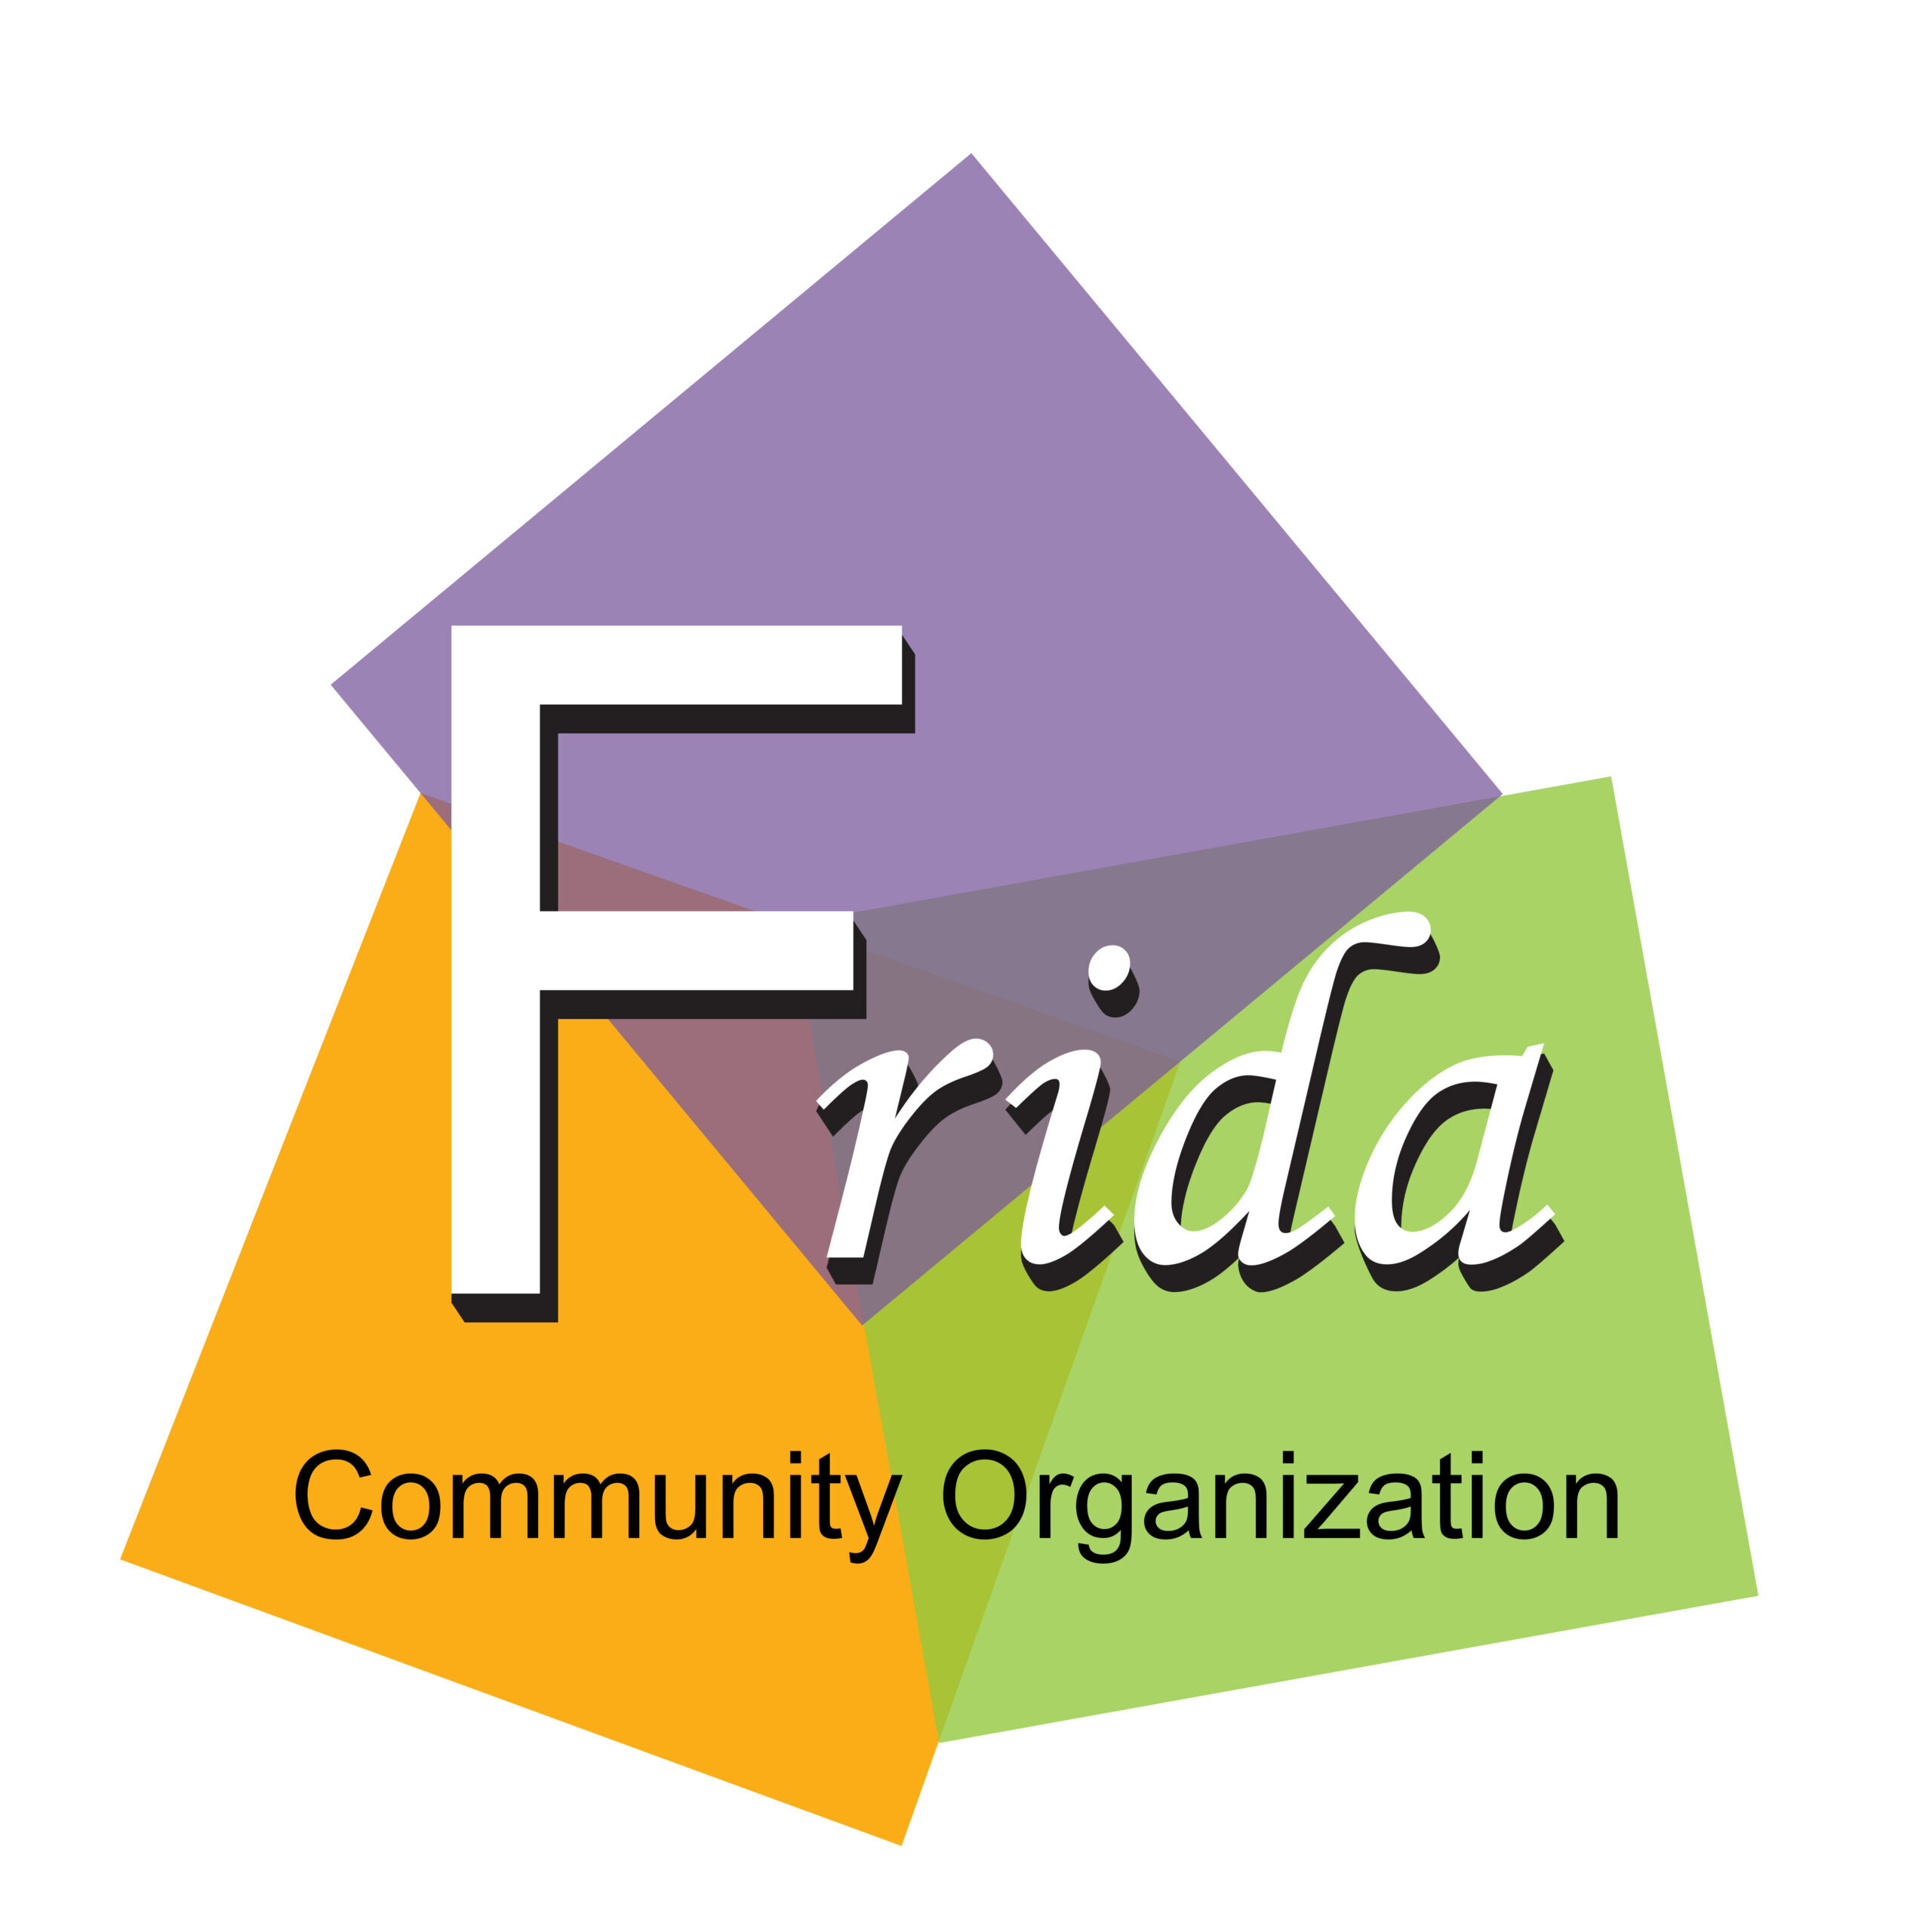 Frida Community Organization